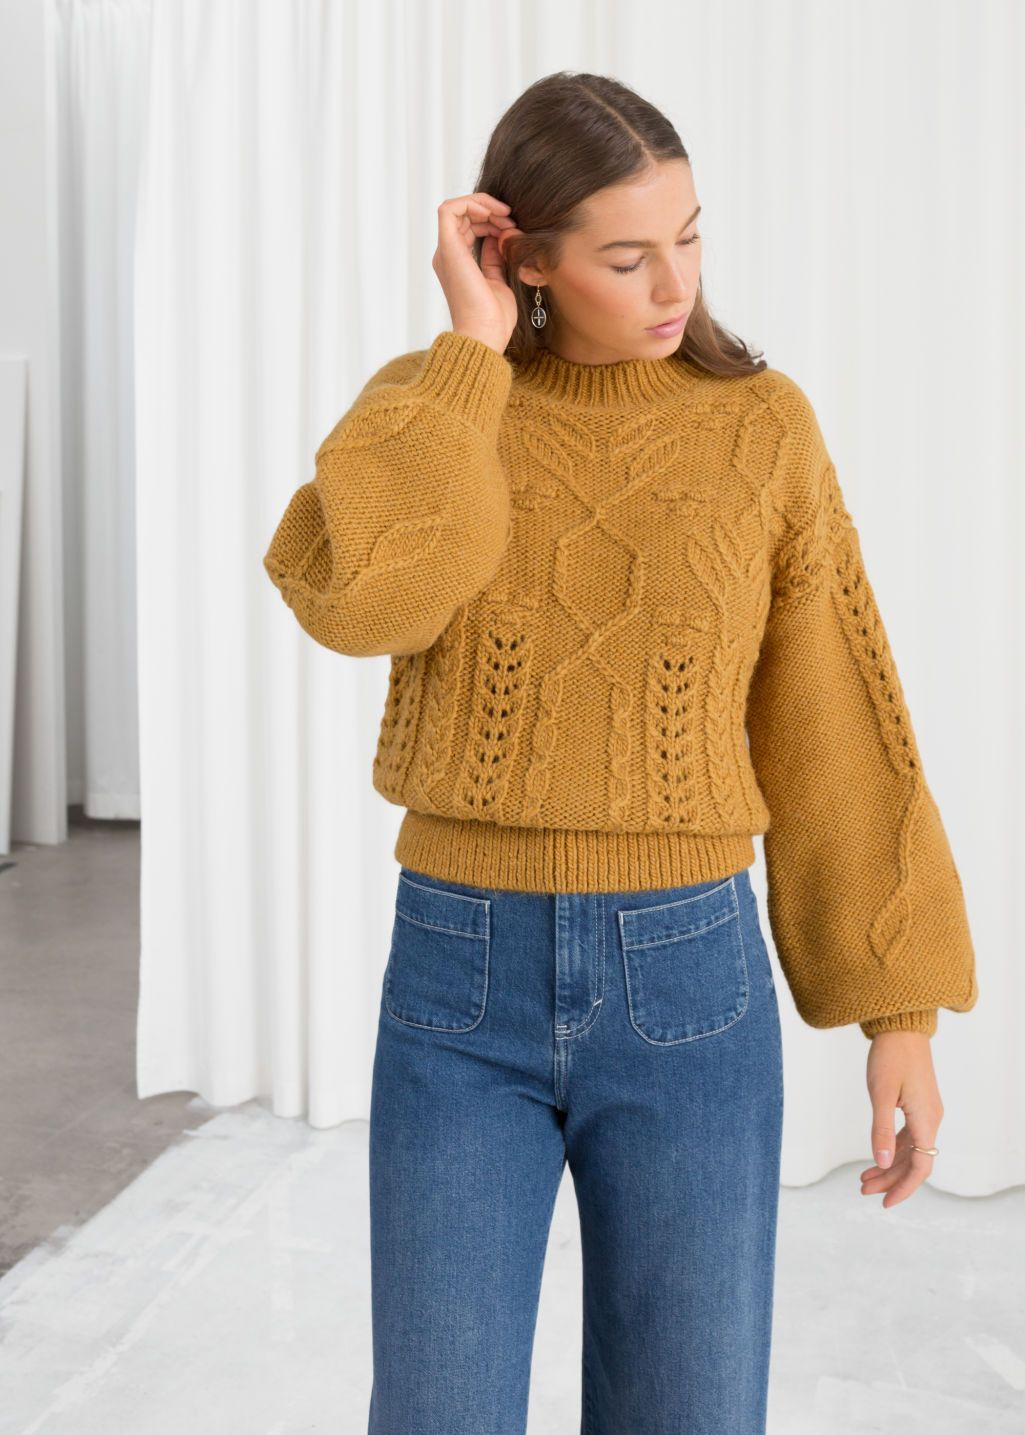 d6970e00cdf Floral Cable Knit Sweater in 2019 | My Style | Cable knit sweaters ...